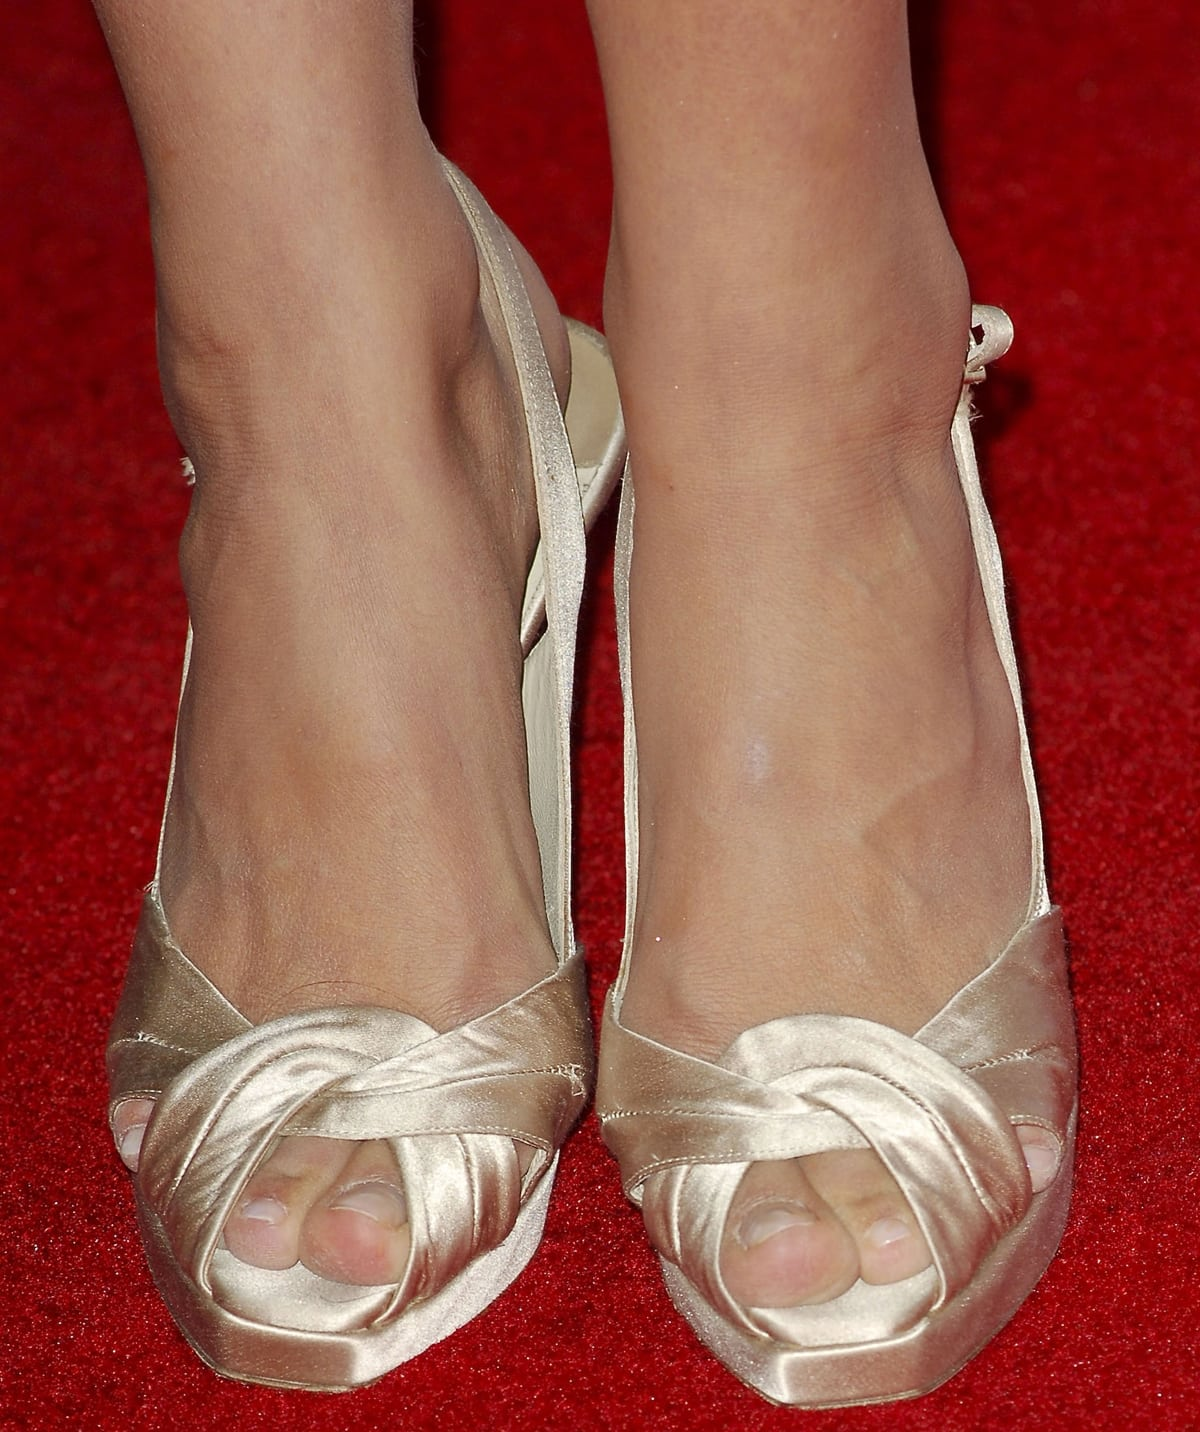 Camilla Belle shows off her size 8 (US) feet in high heels